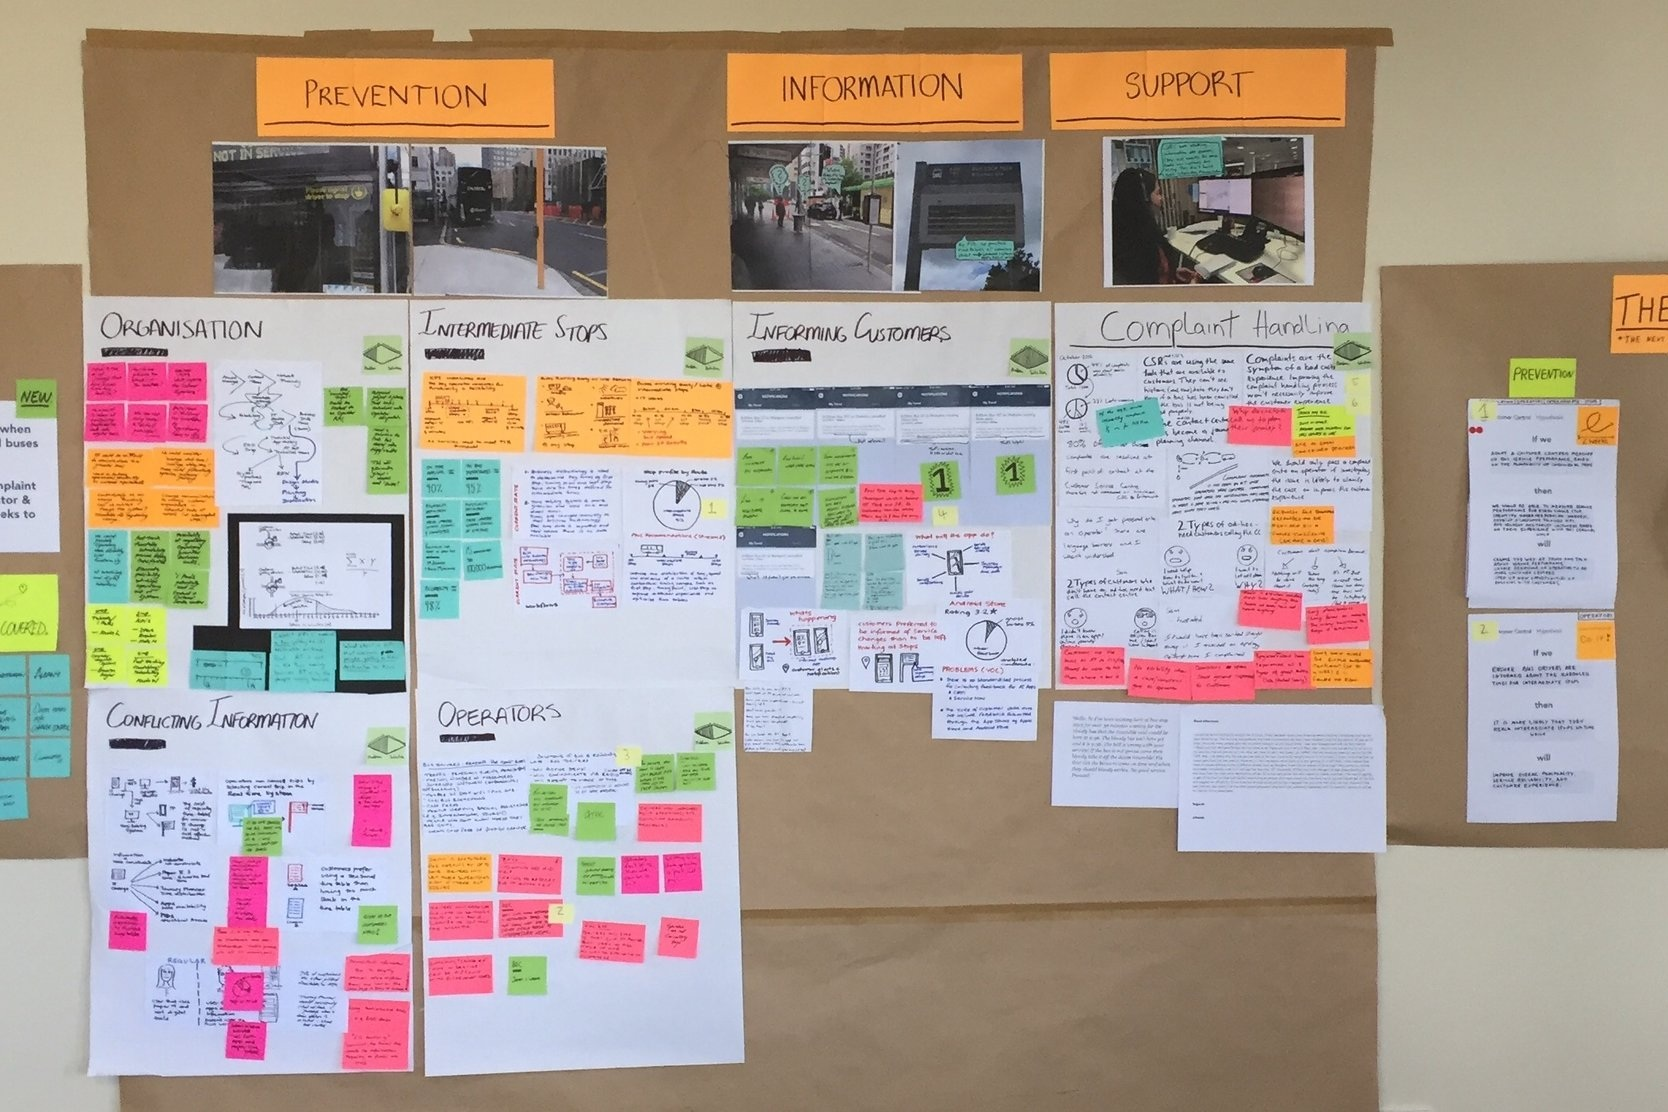 Public Transport - innovation hub design - I helped a public transport provider build an innovation hub and adopt agile ways of working. As a sprint facilitator I worked with a team of SMEs to solve problems people have when using public transport.Read more